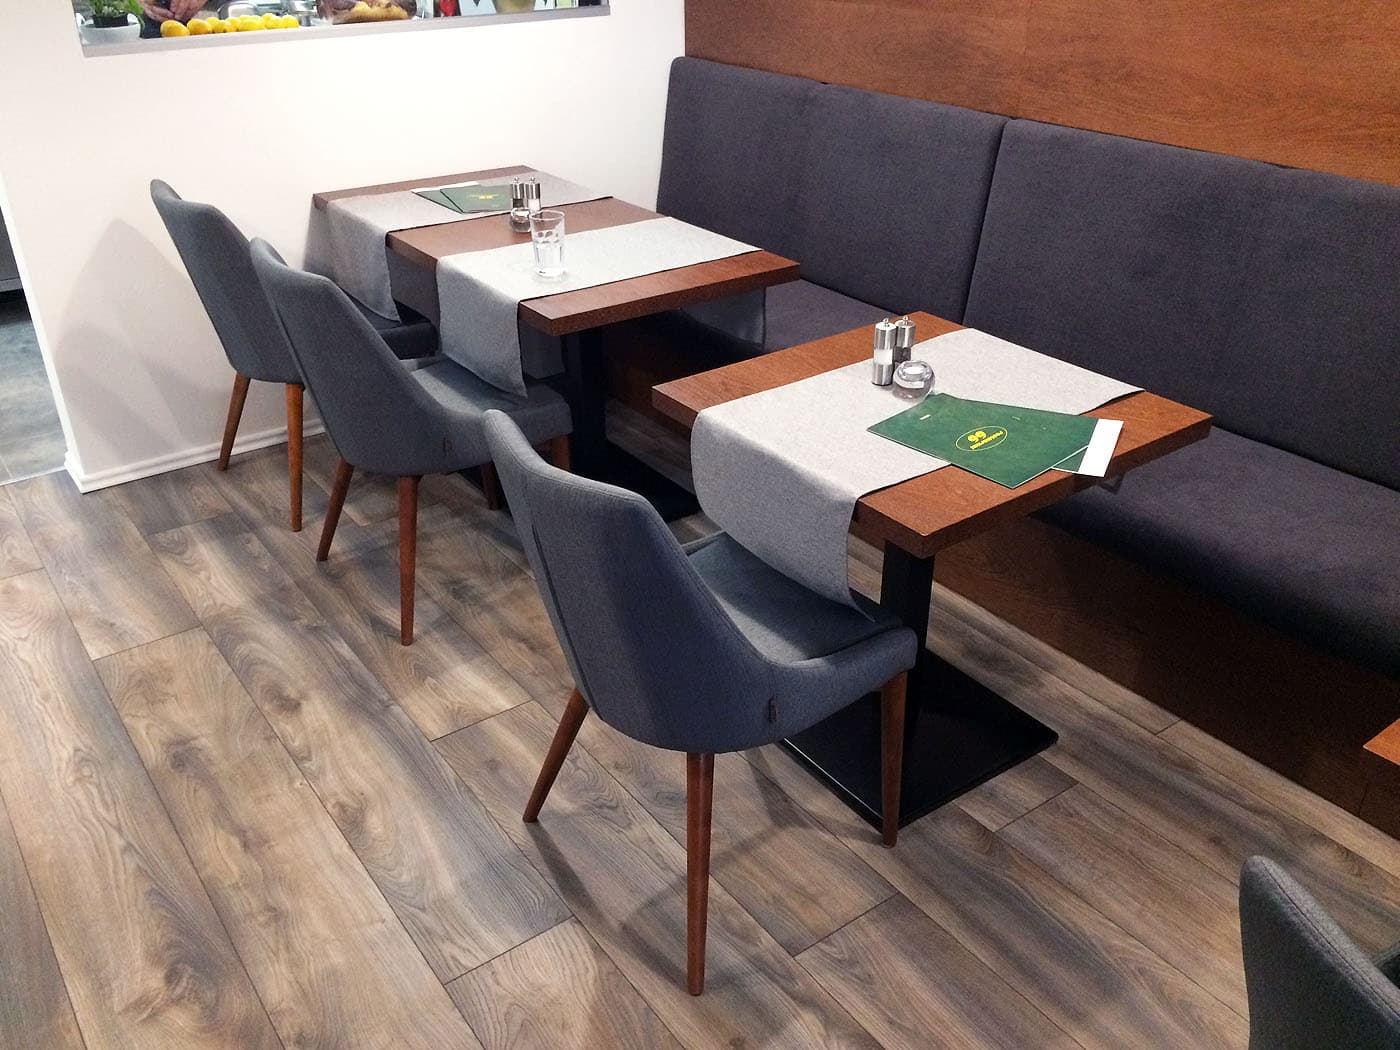 juju_chair_restaurant_roomfactory_3